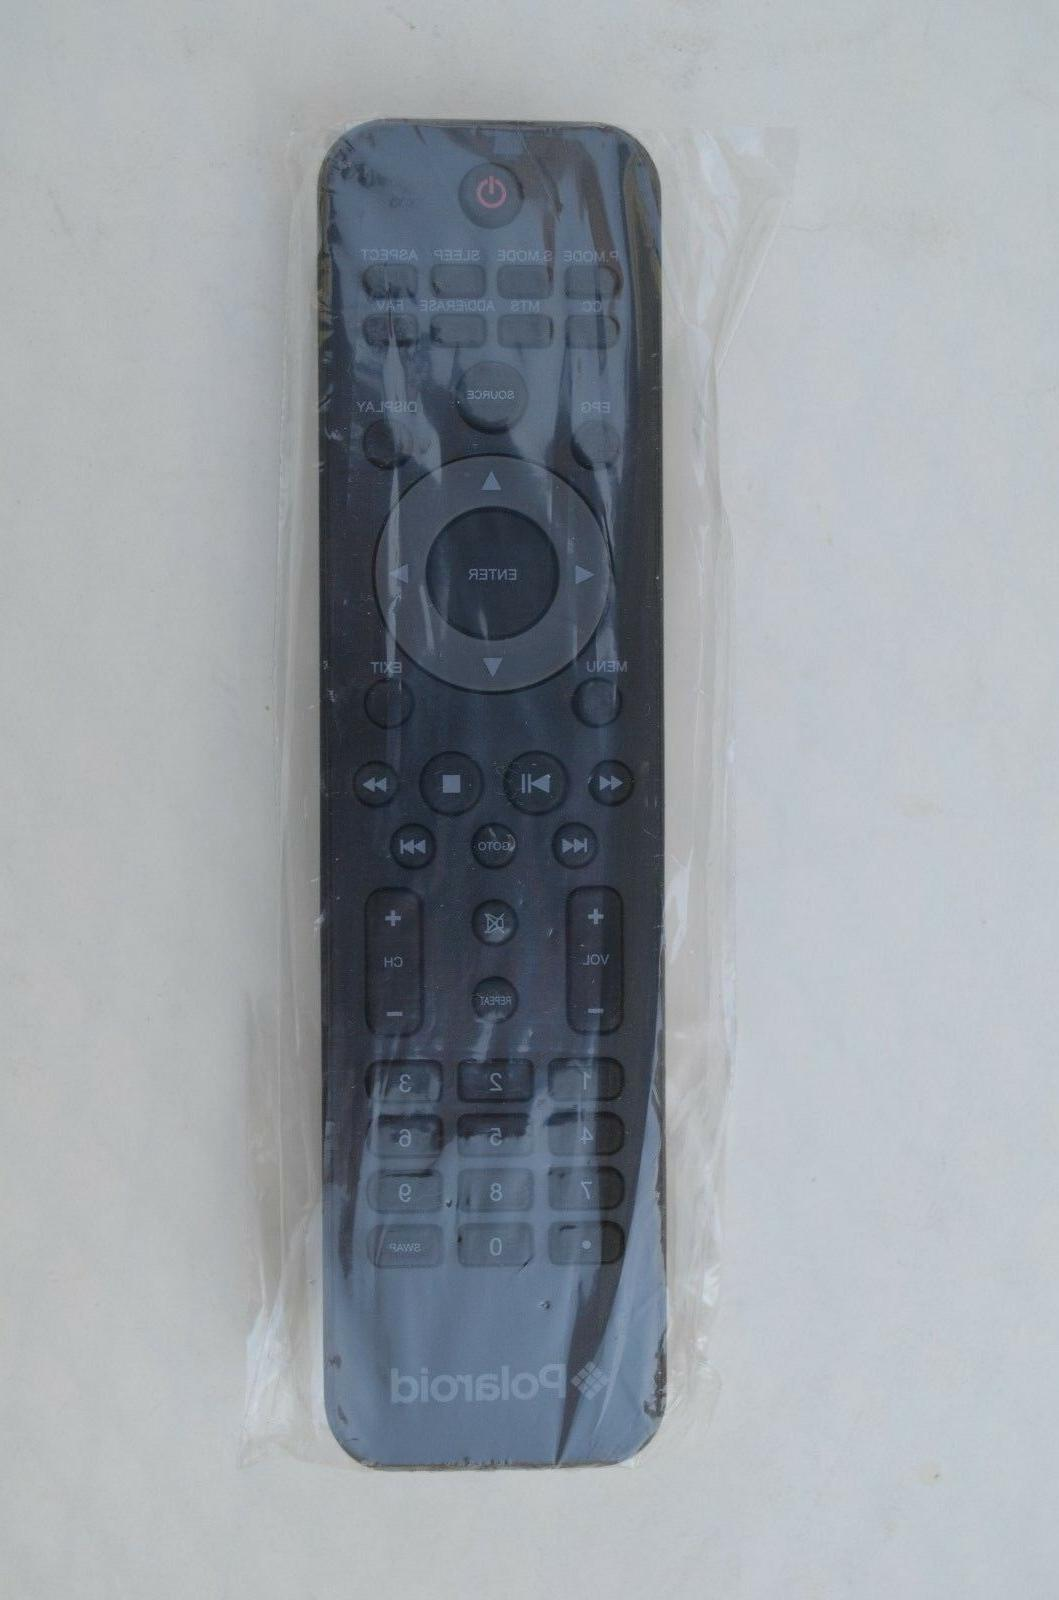 new tv remote control for 22gsd3000 24gsd3000